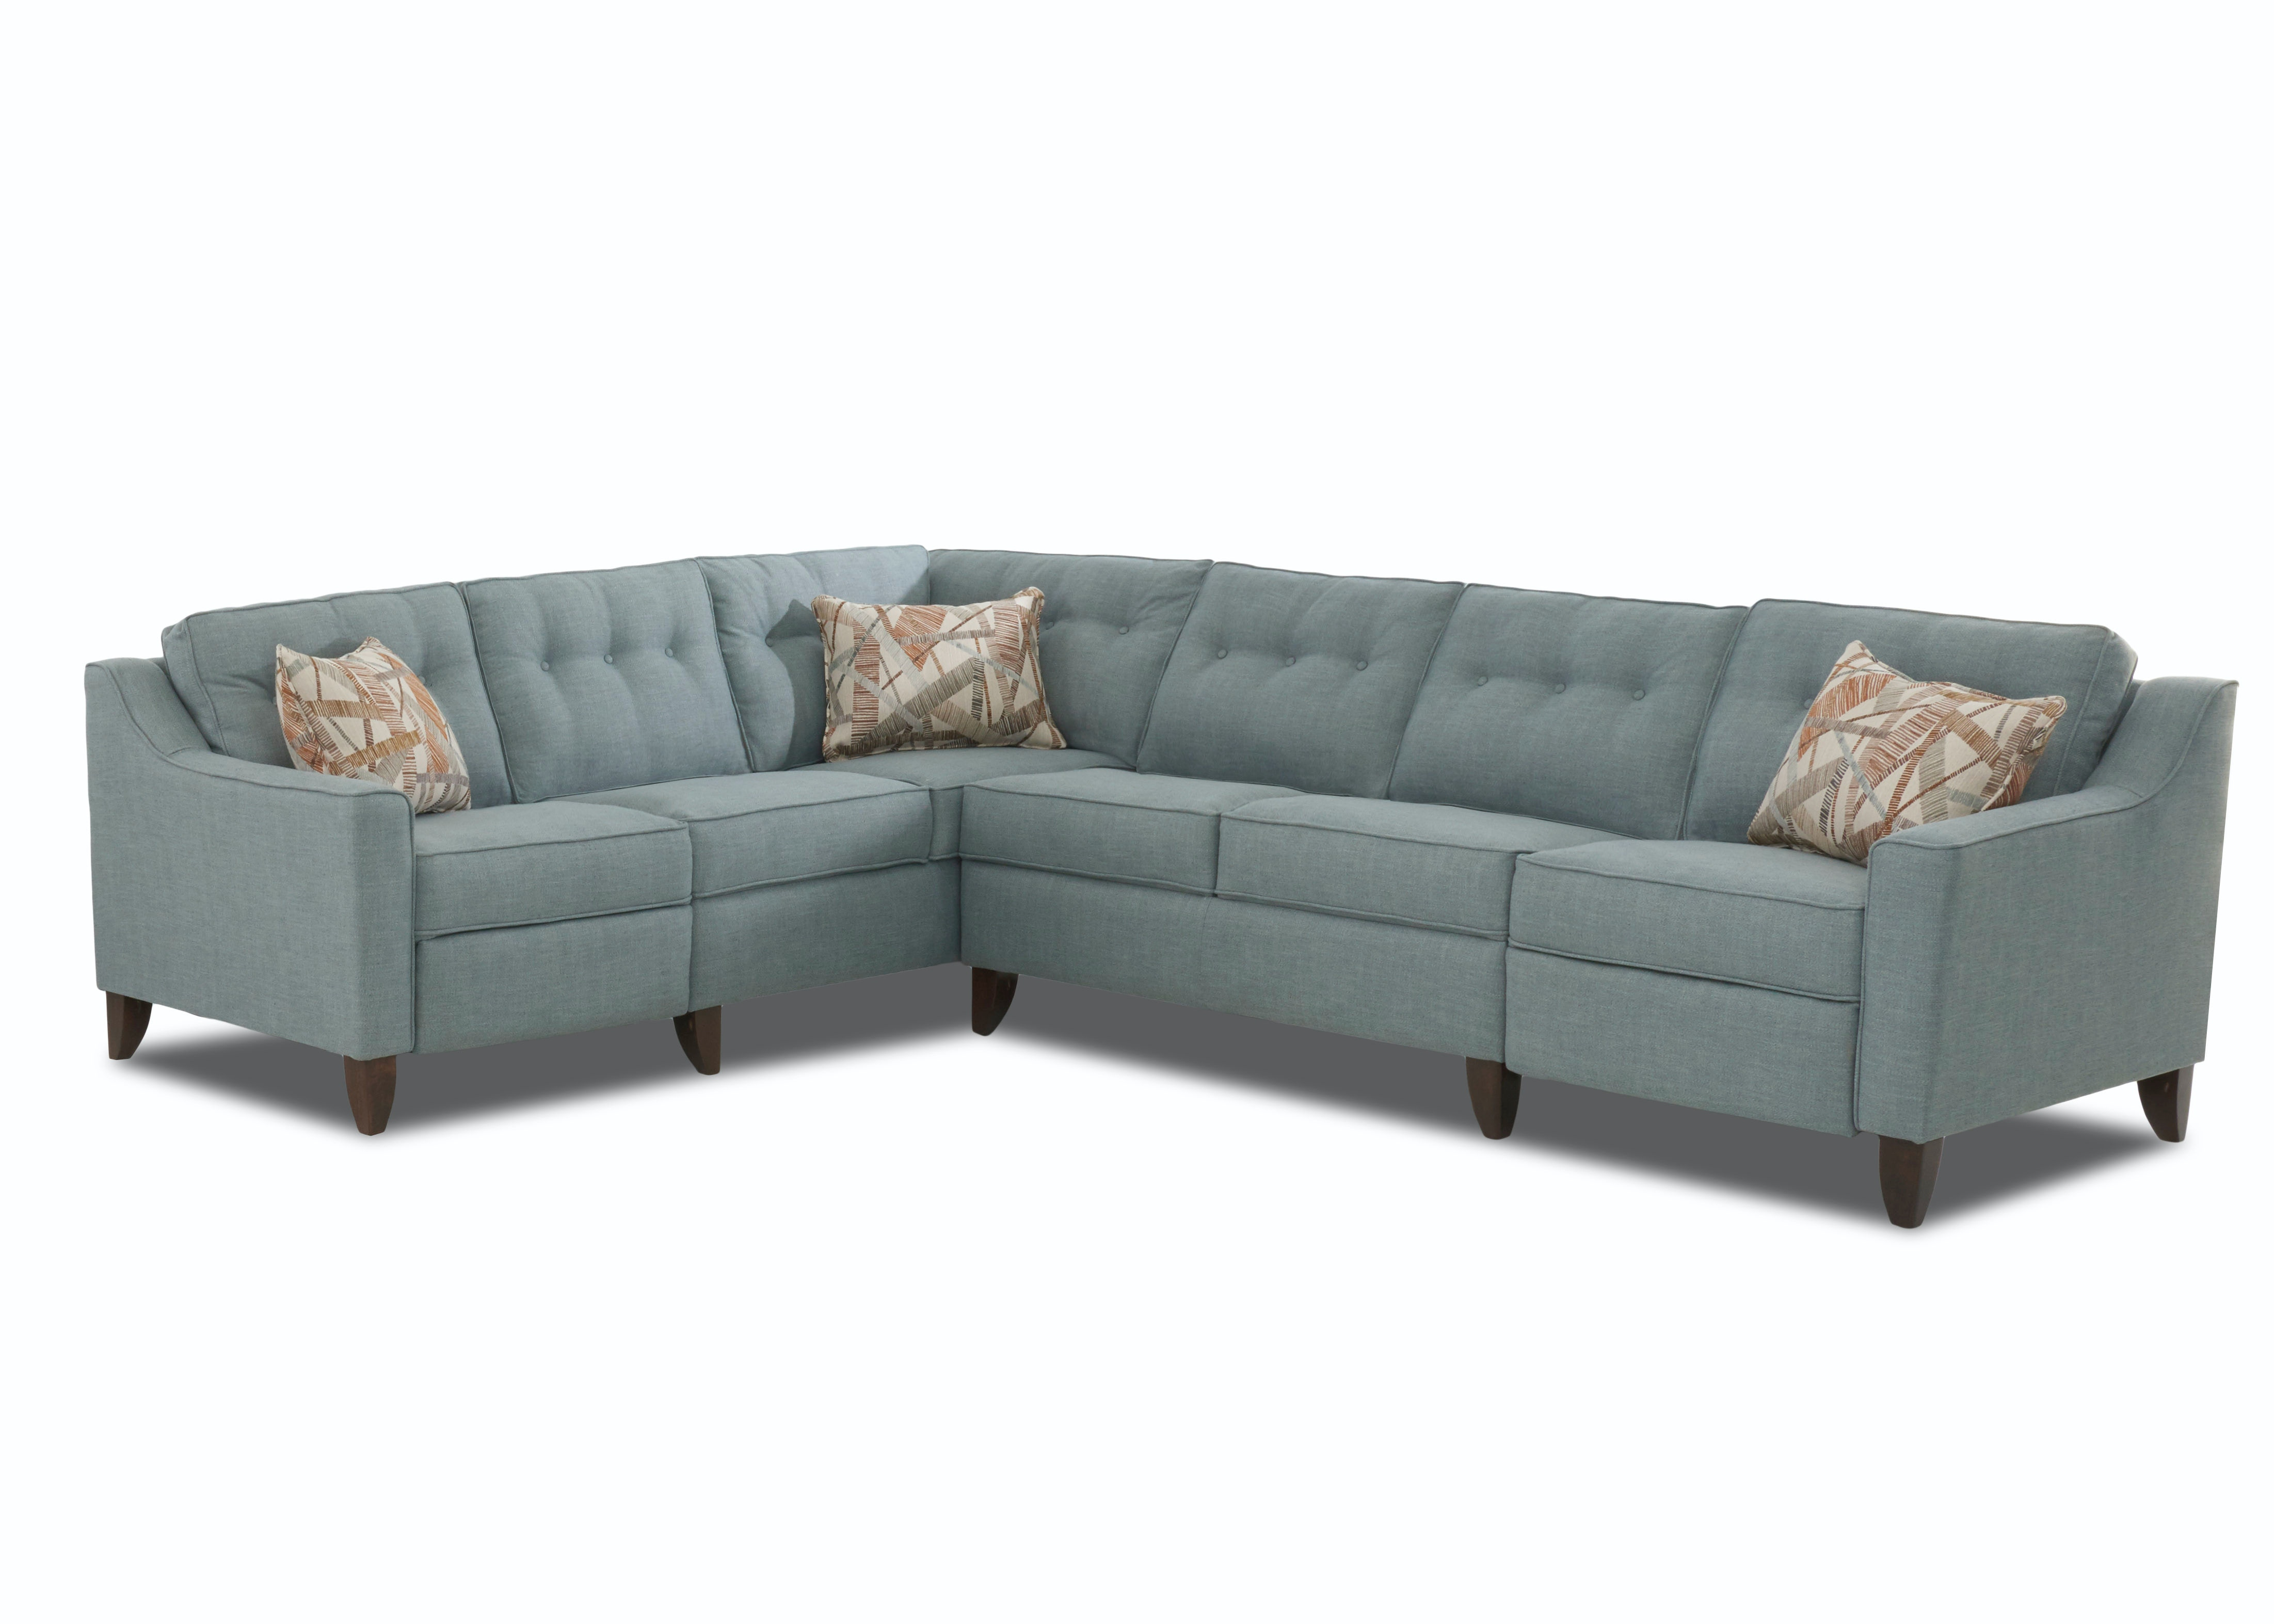 Klaussner Audrina Sectional 31603 SECT